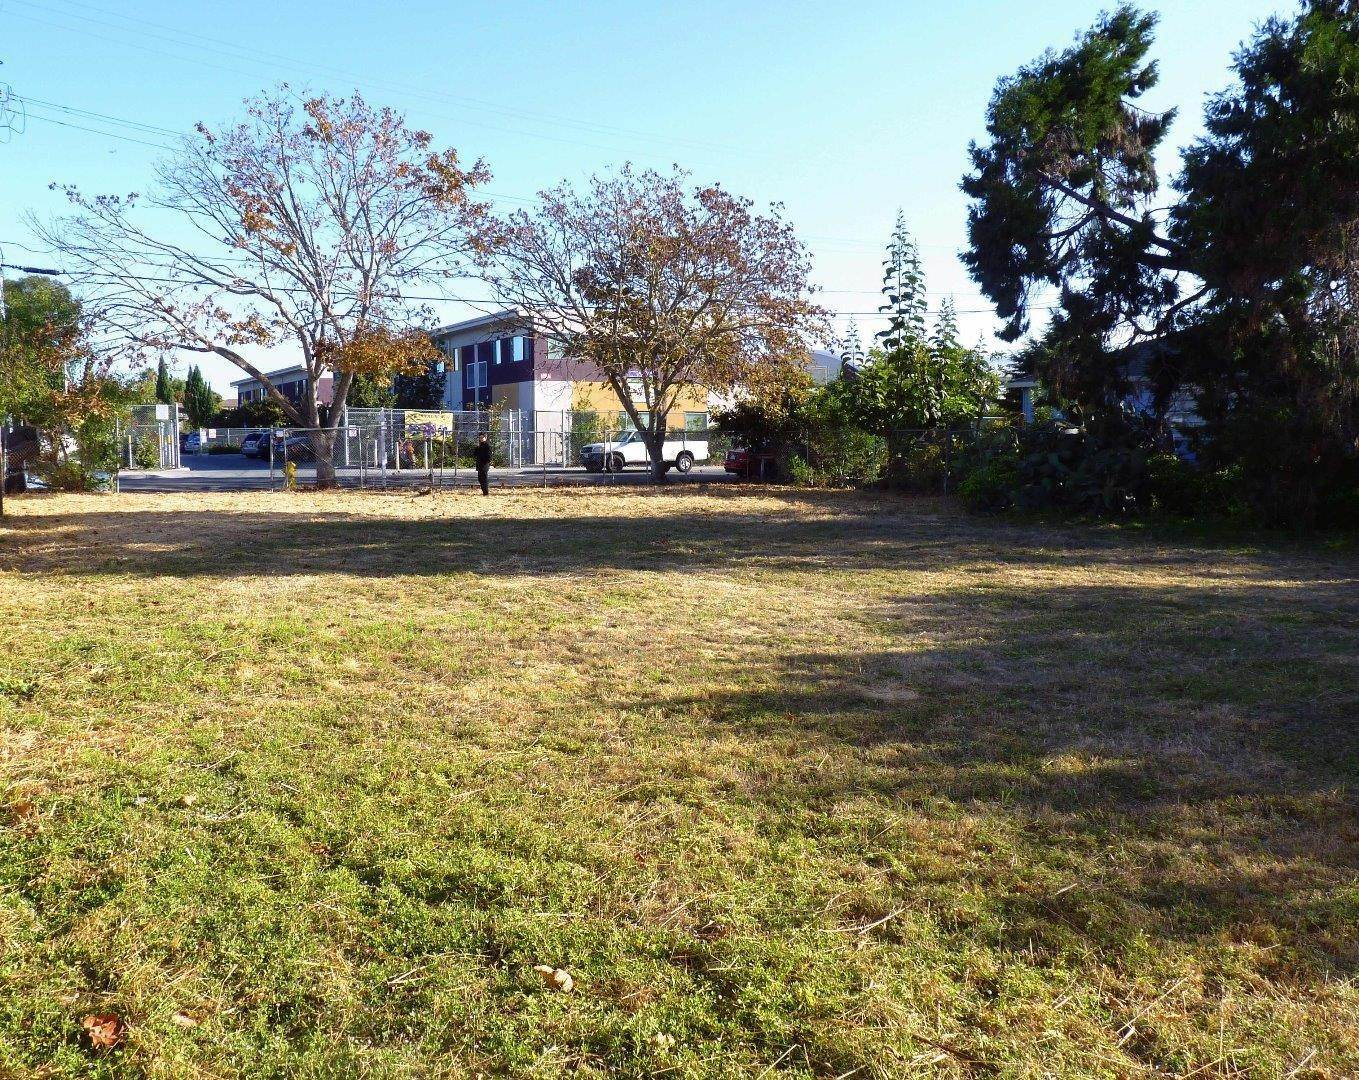 Residential Lot at 1004 Garden Street East Palo Alto, California 94303 United States